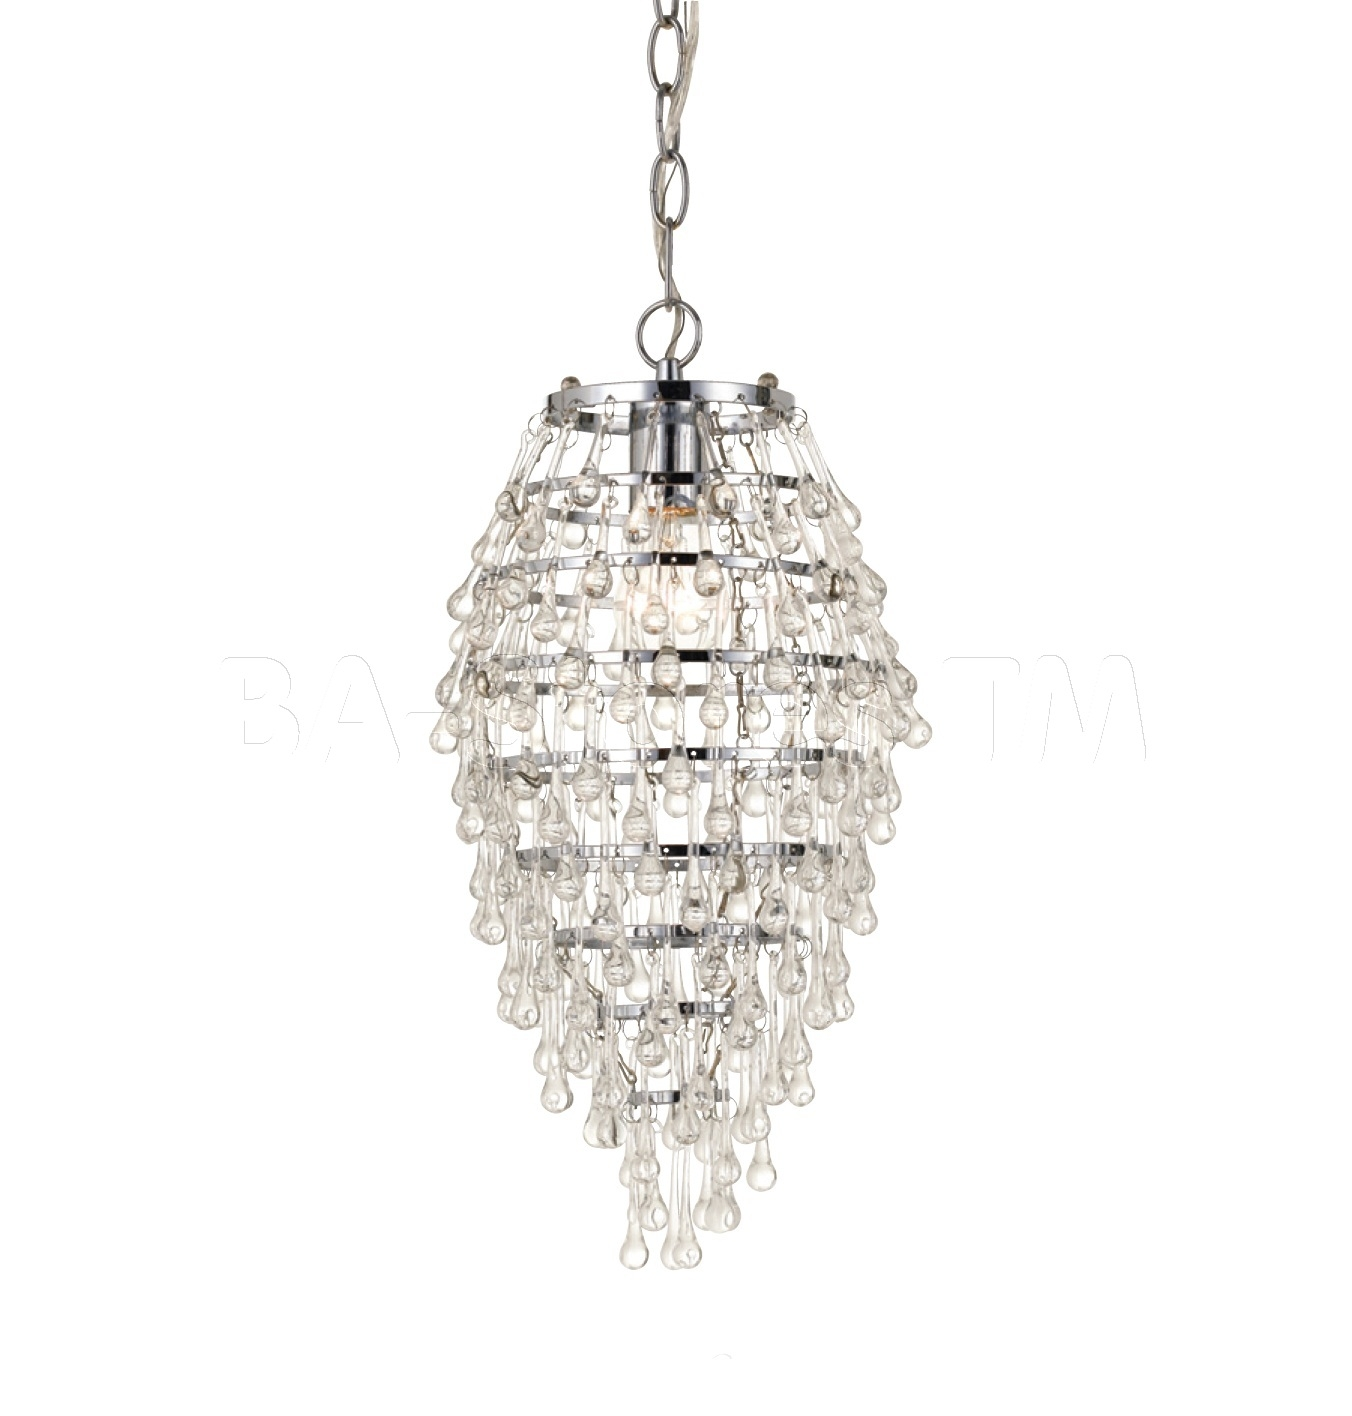 Modern Mini Chandelier Intended For Small Glass Chandeliers (Image 9 of 15)